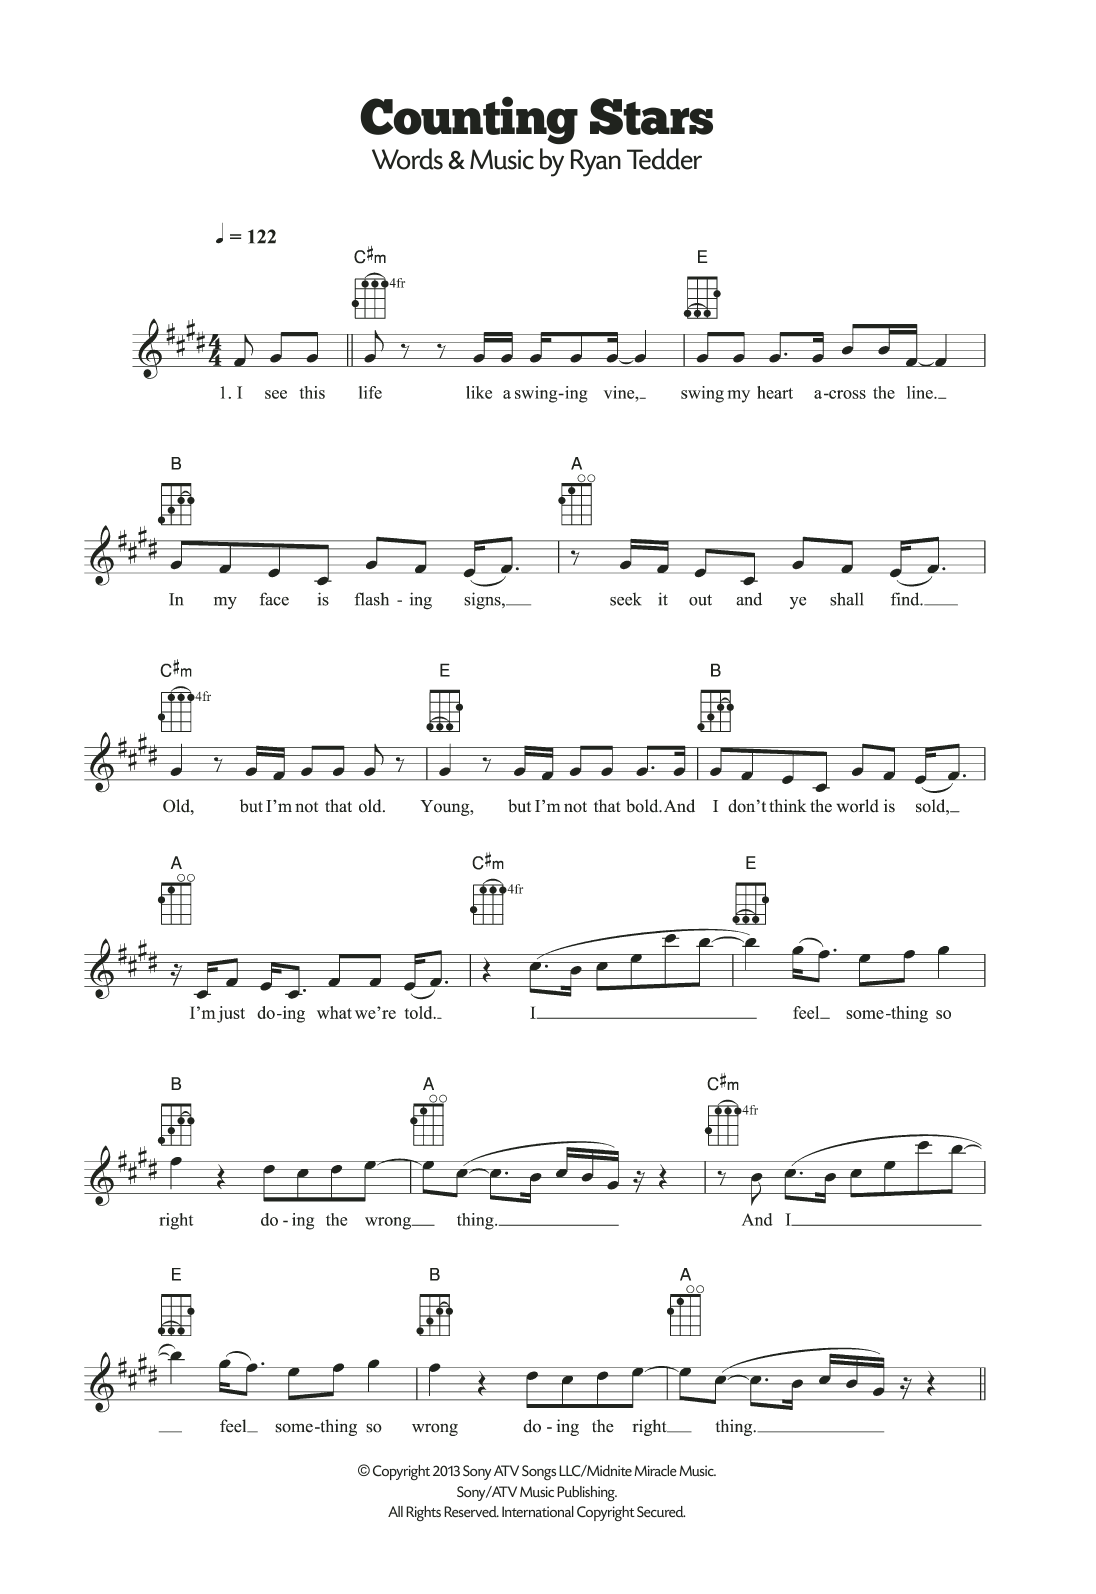 Sheet music digital files to print licensed ryan tedder digital sheet music digital files to print licensed ryan tedder digital sheet music hexwebz Images